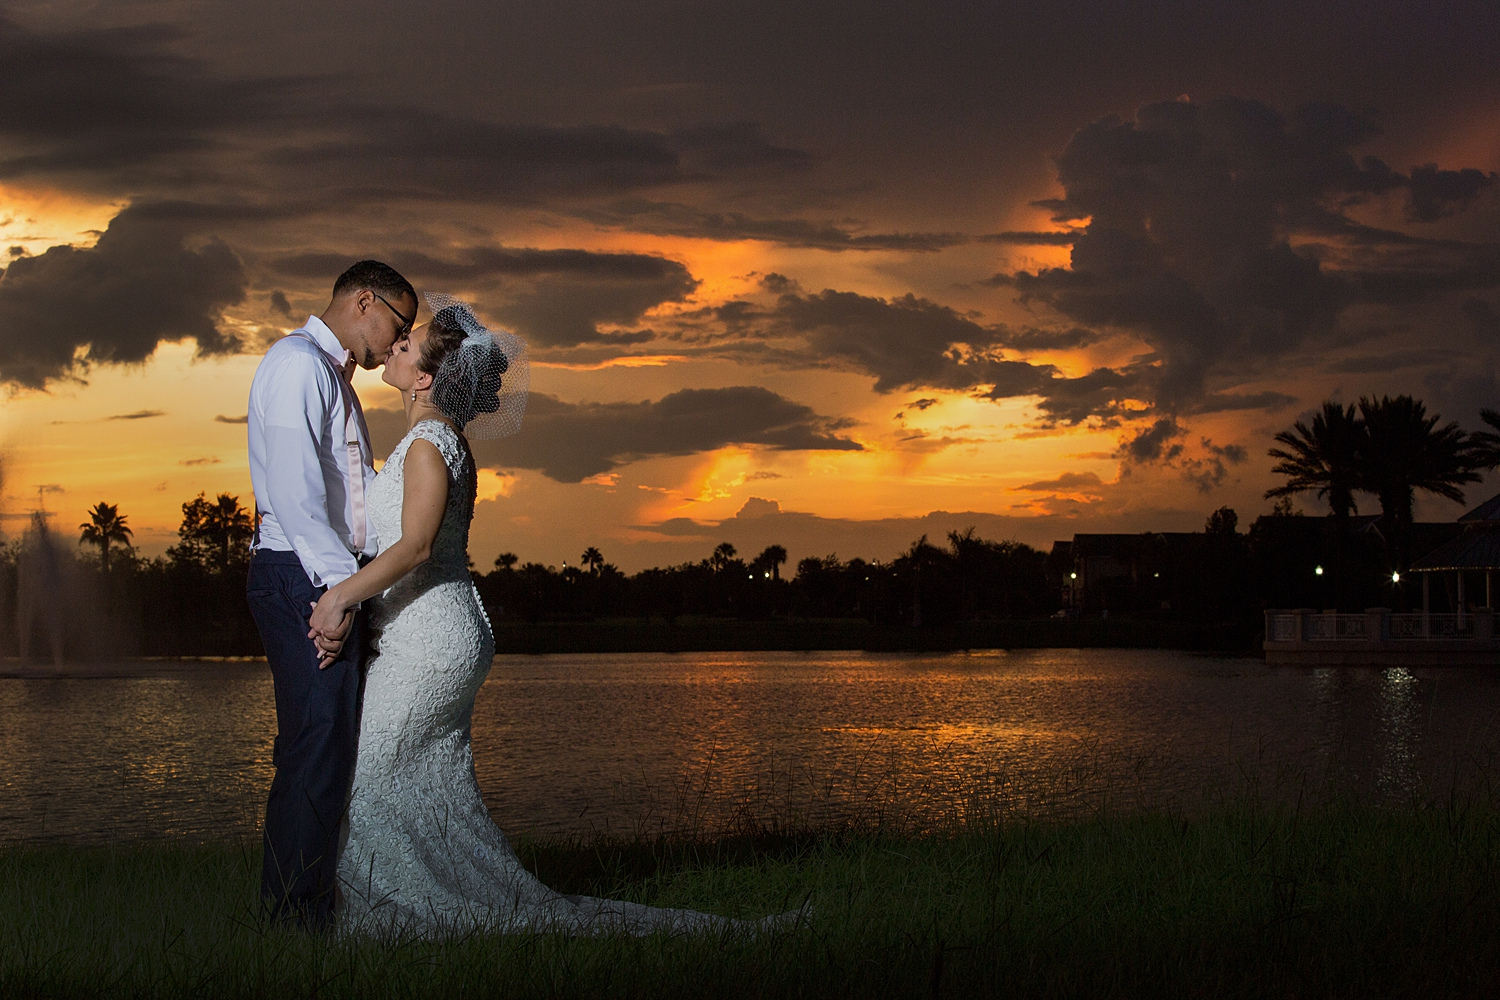 miami wedding photographer_0003.jpg